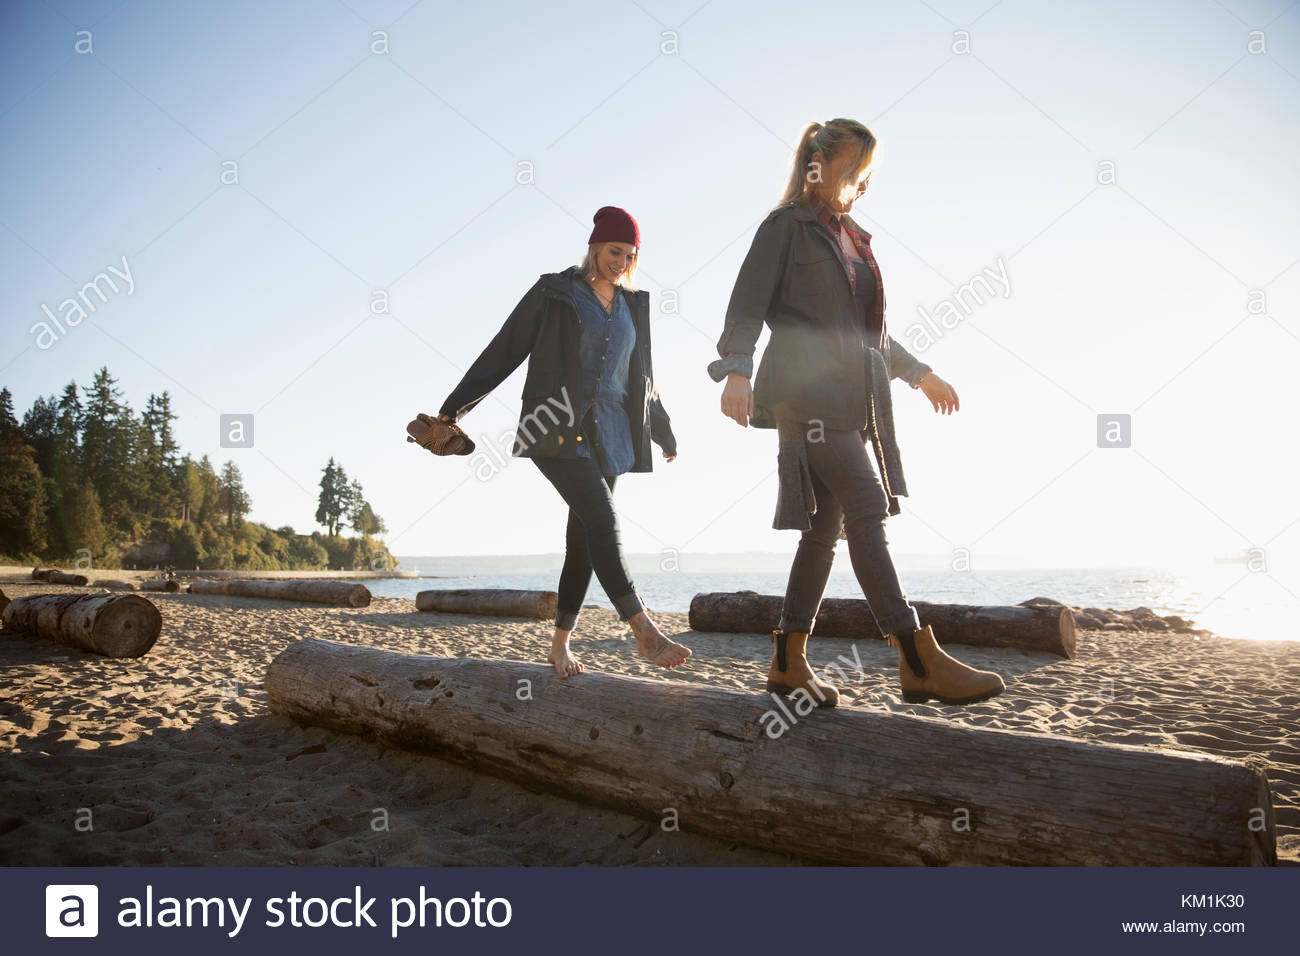 Mother and daughter walking, balancing on log on sunny ocean beach - Stock Image